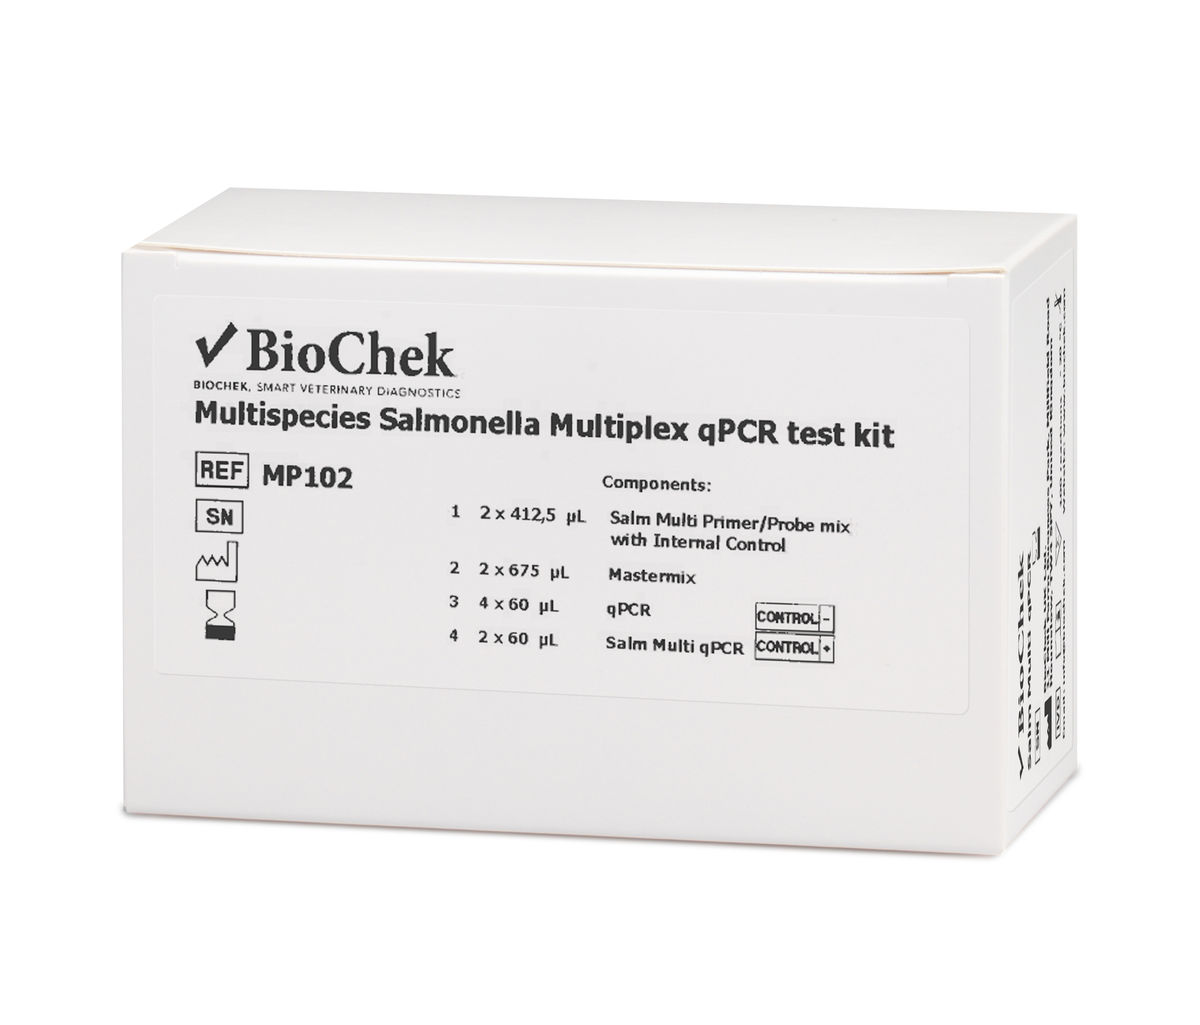 Multispecies Salmonella Multiplex qPCR MP102